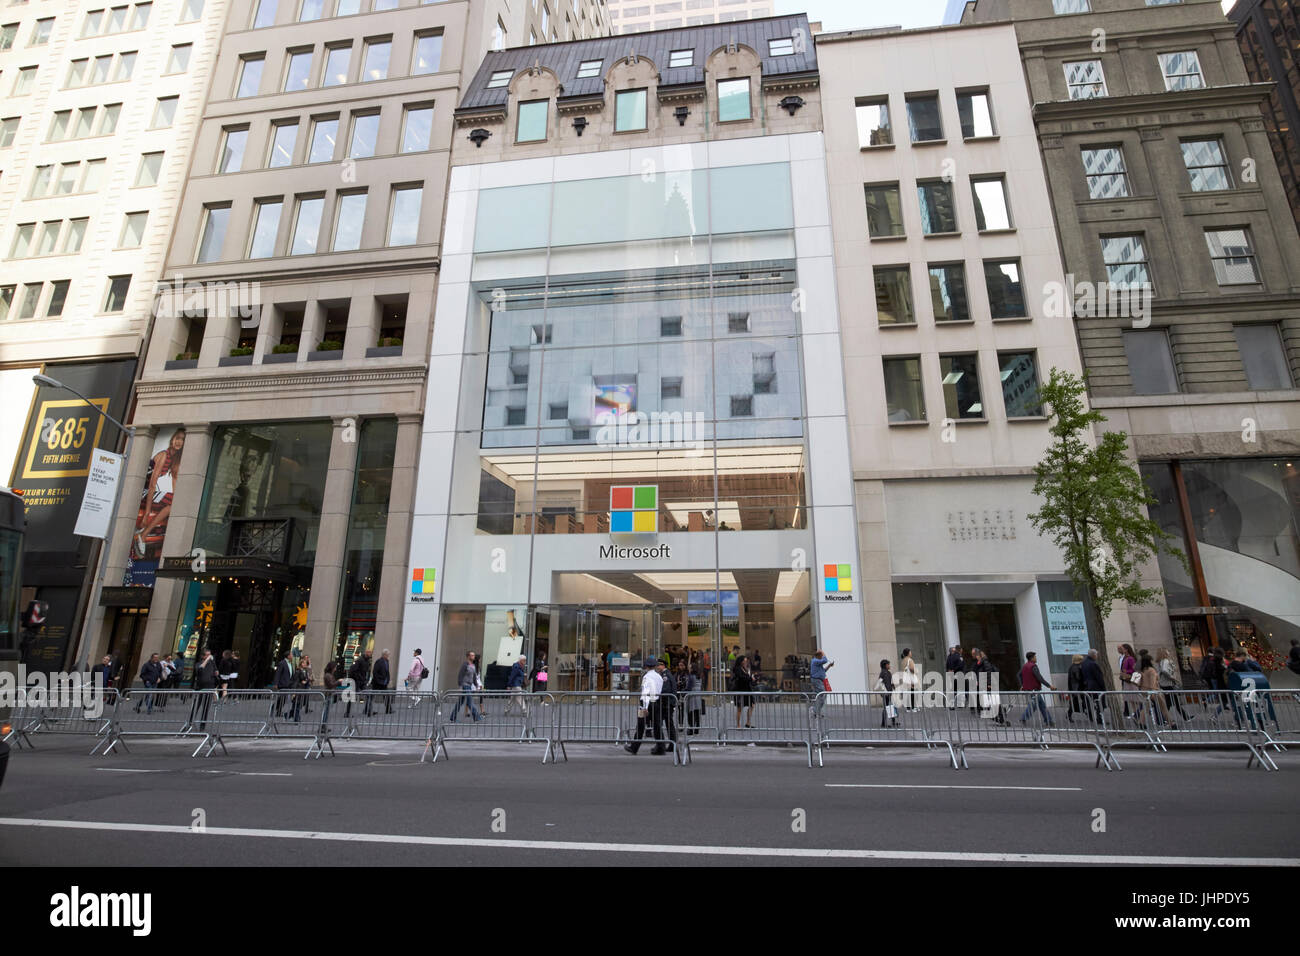 microsoft new york city flagship store fifth avenue New York City USA - Stock Image